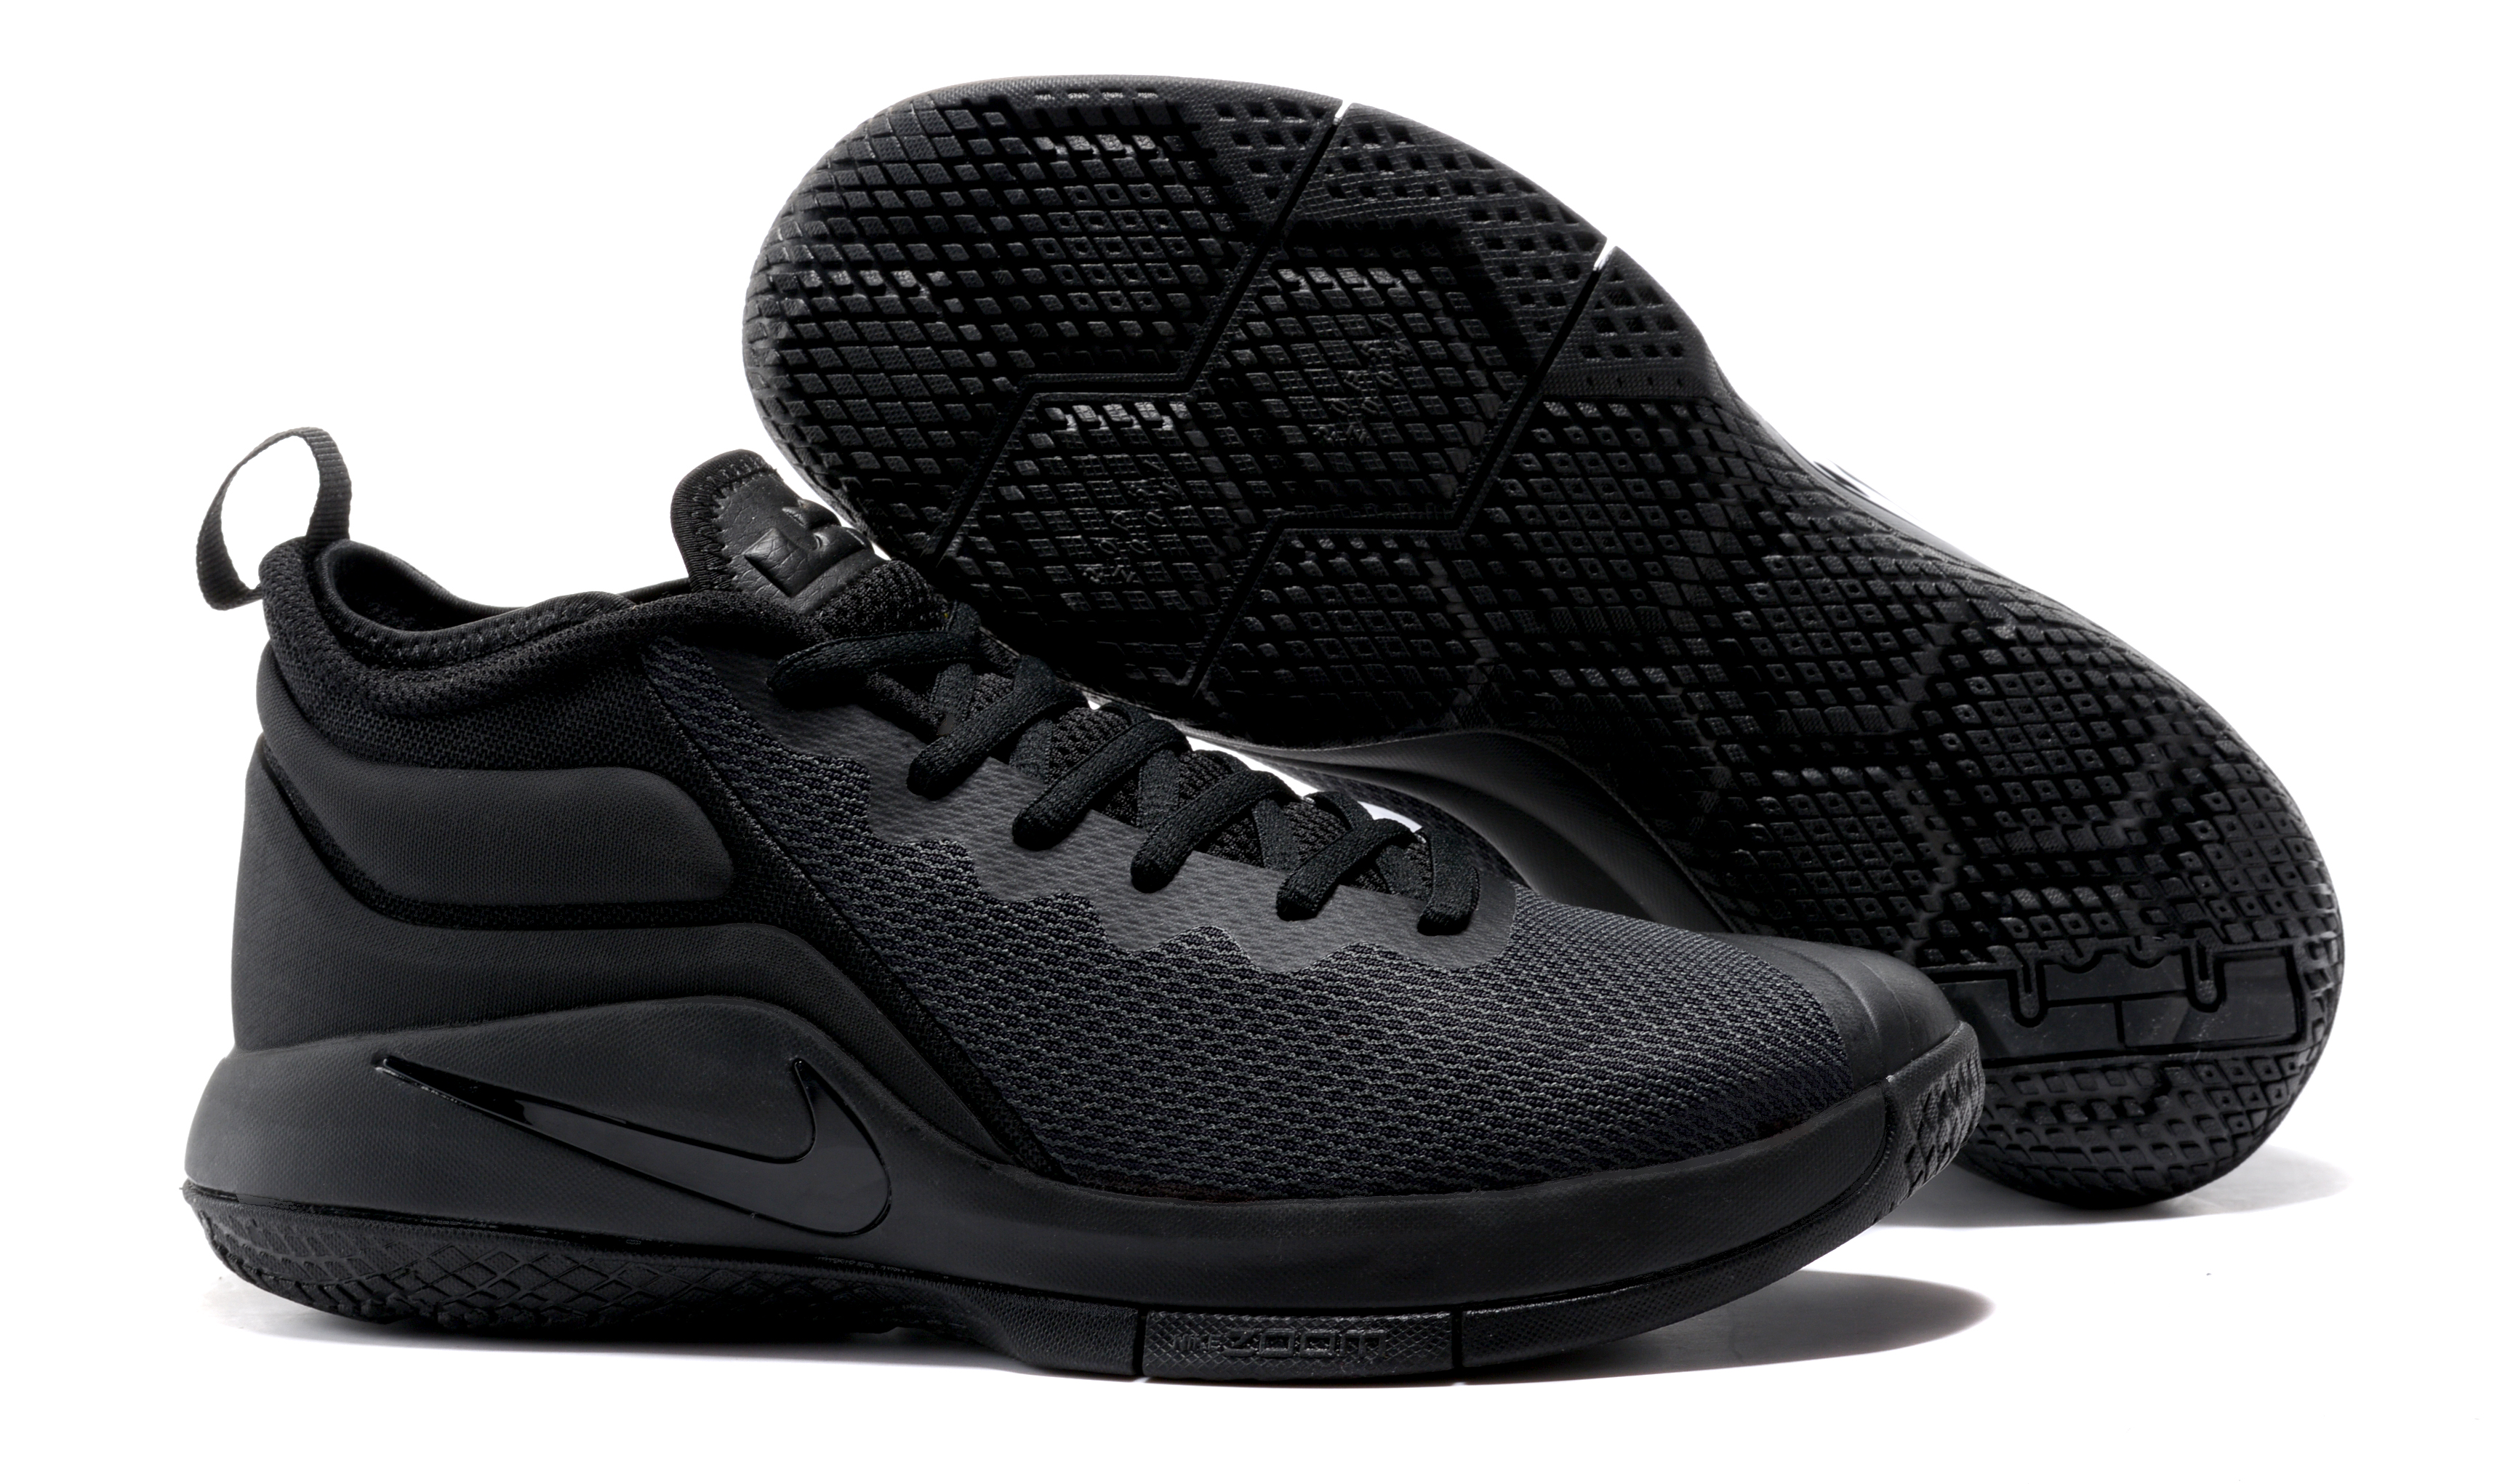 Nike Lebron Wintness 1 The Black Shoes